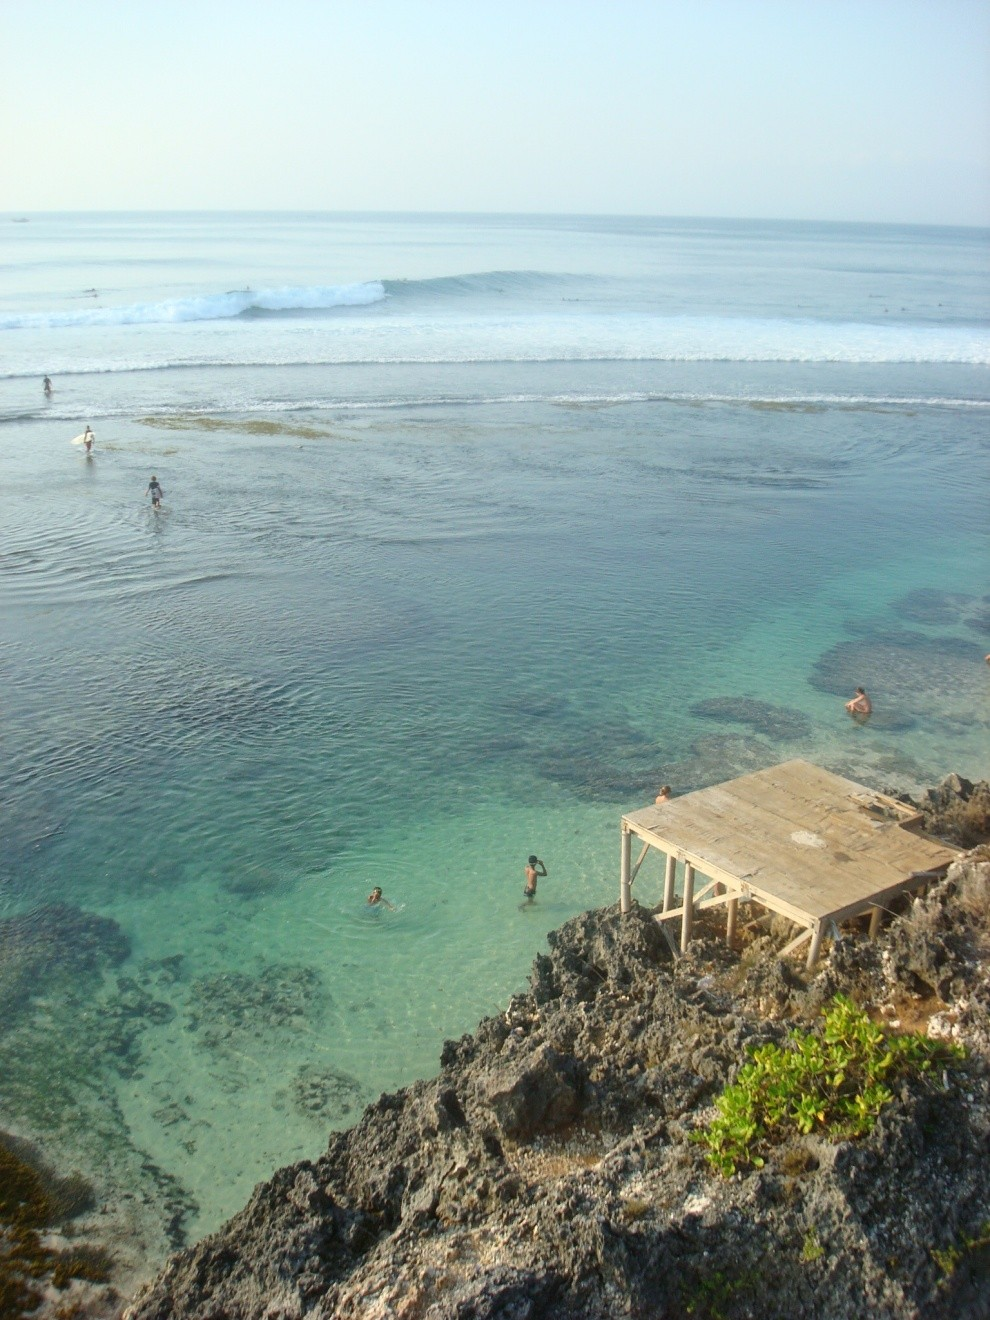 Jack Daniels's photo of Uluwatu